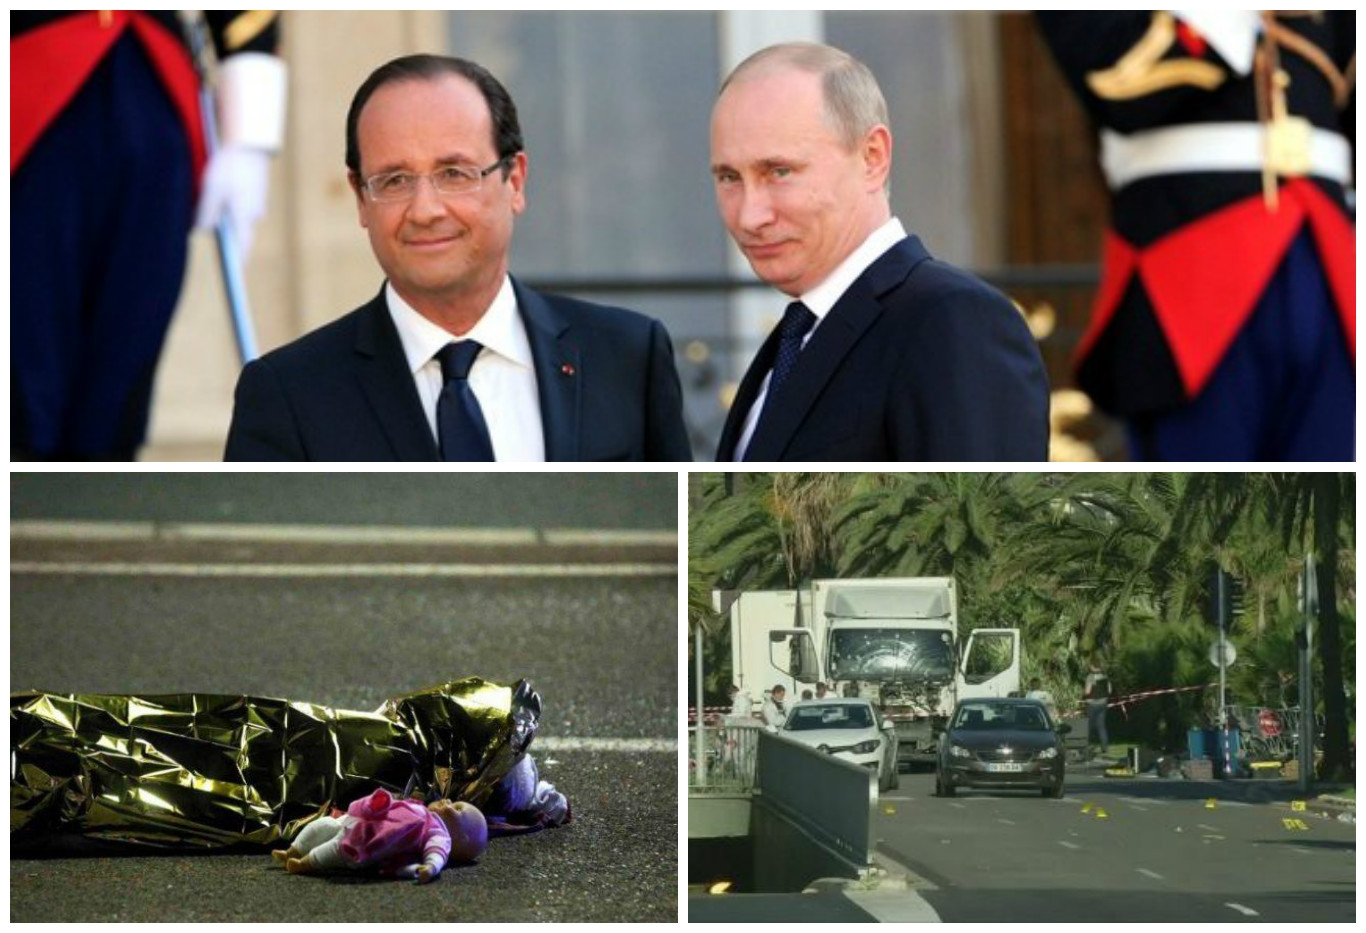 Russia ready to join 'war on terrorism' with France: Putin tells Hollande